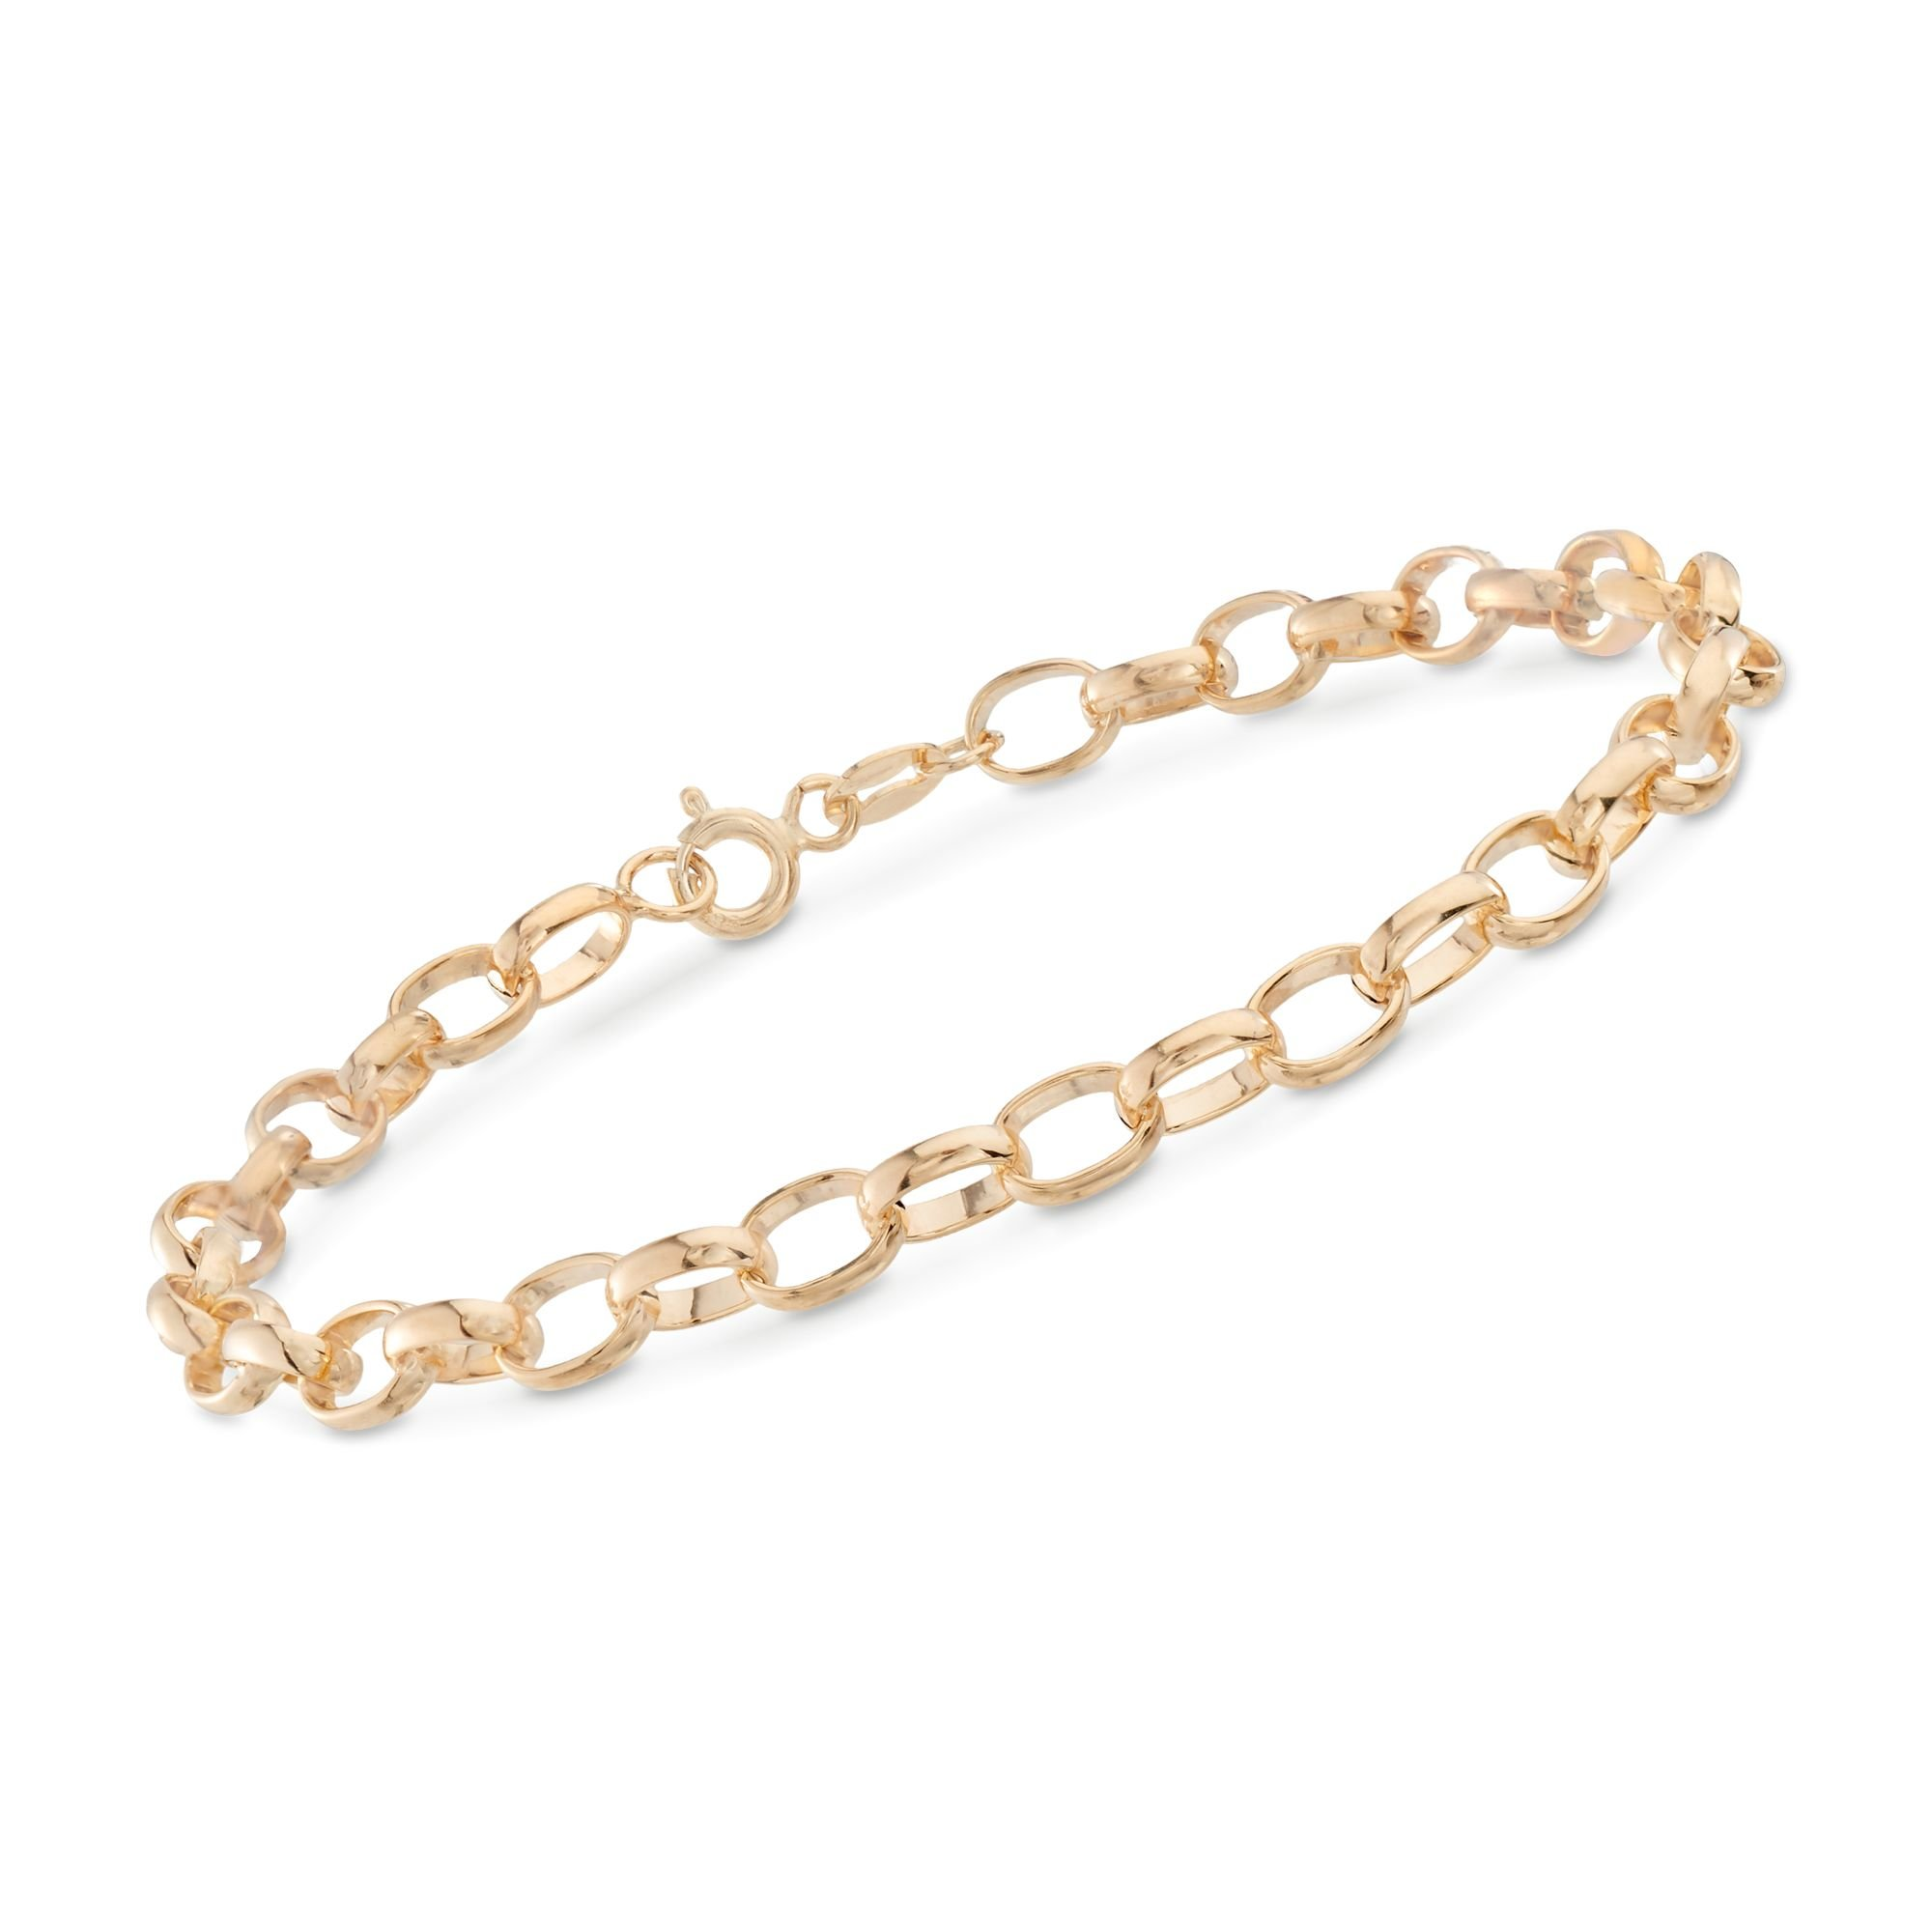 Ross-Simons Italian 4.5mm 14kt Yellow Gold Cable-Link Bracelet